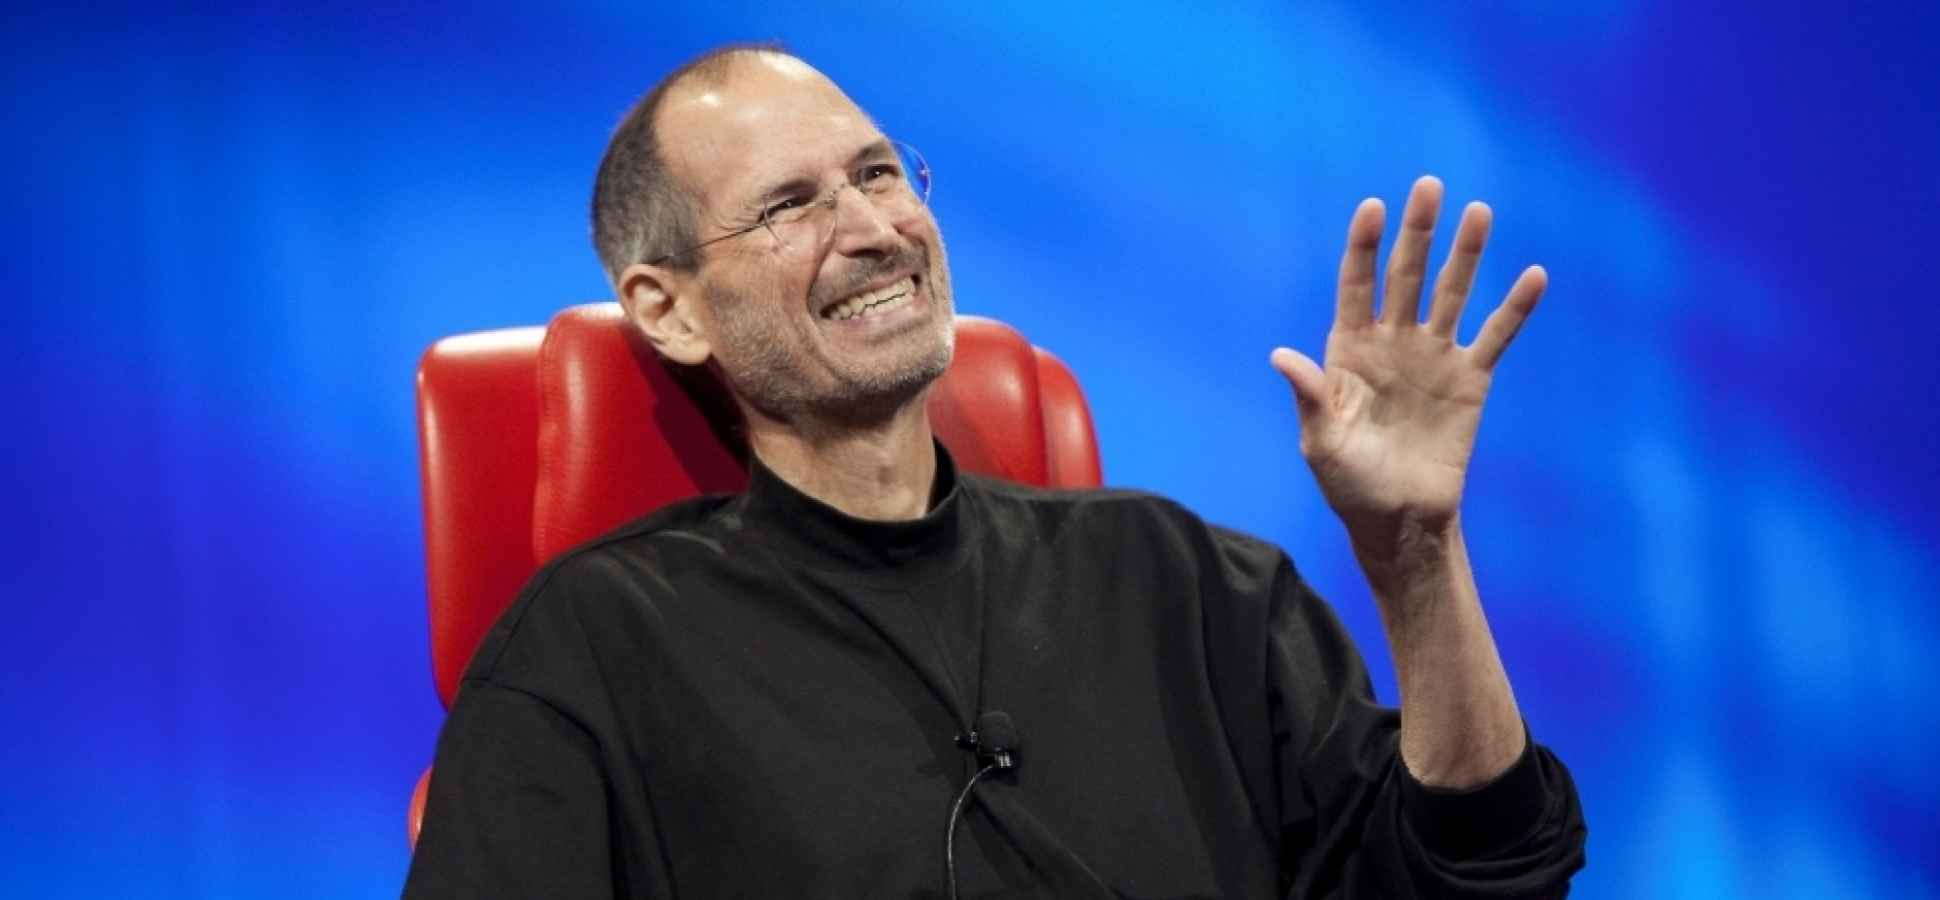 20 All-Time Best Steve Jobs Quotes